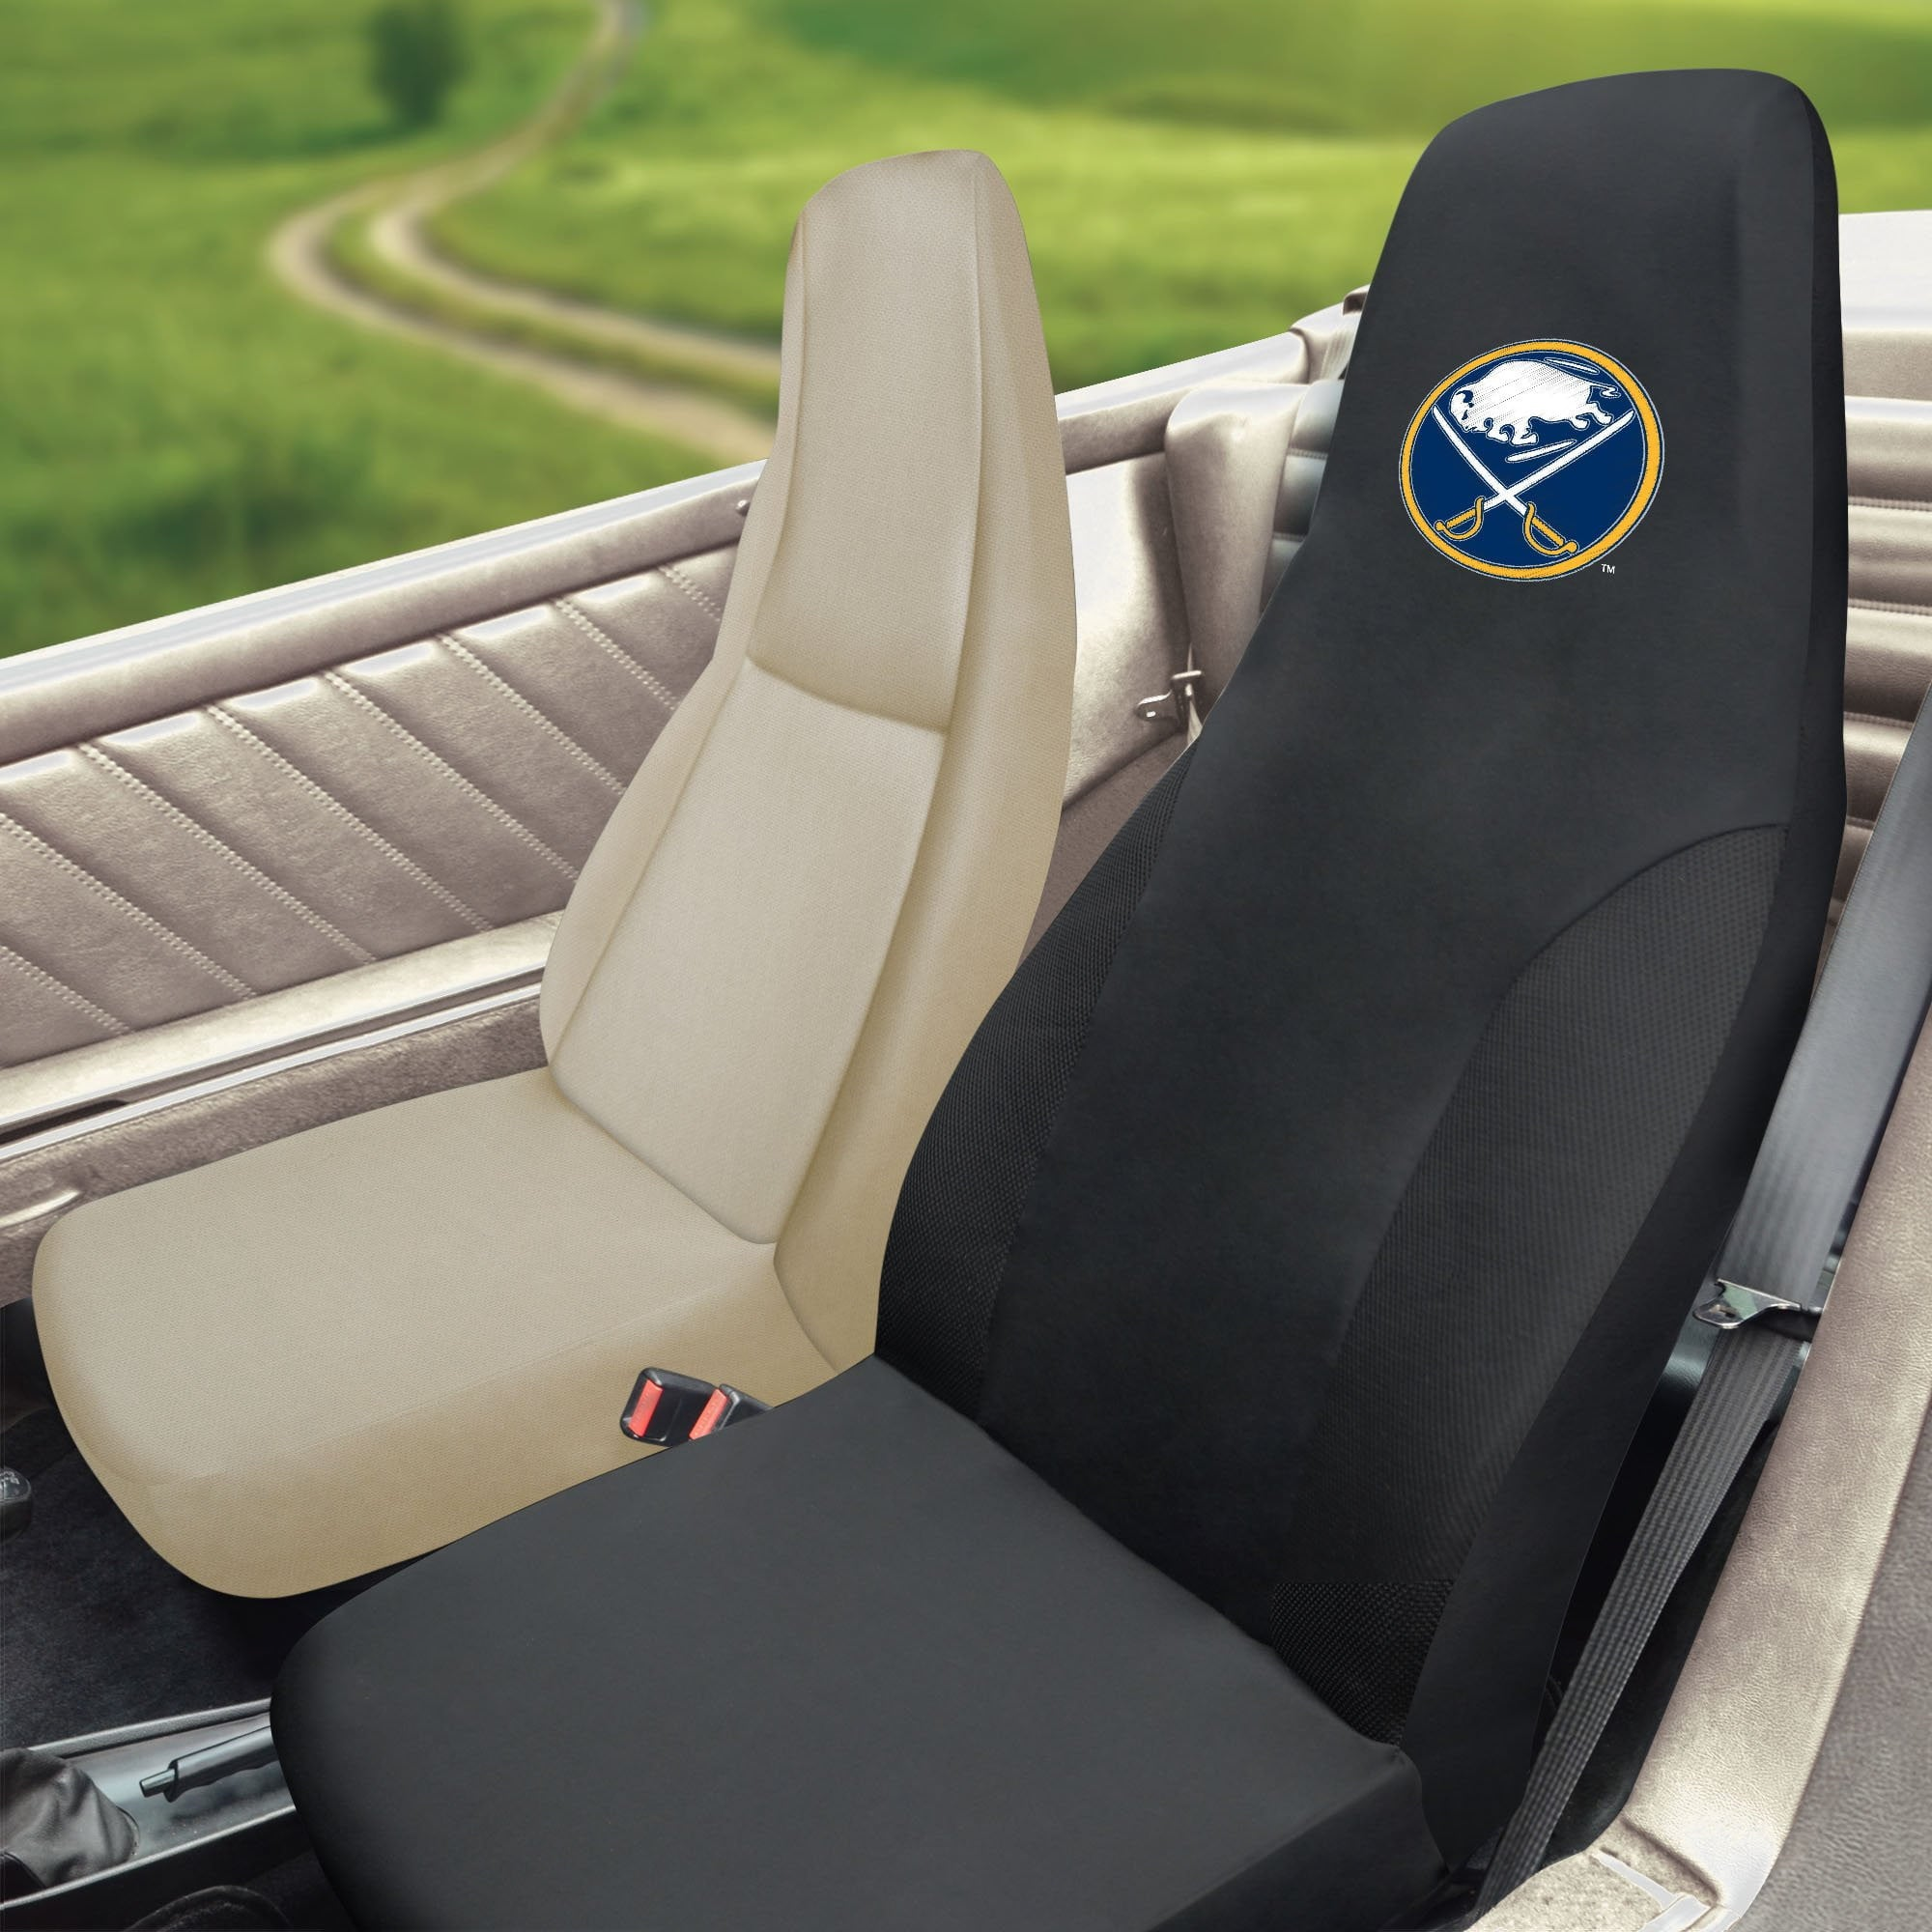 NHL - Buffalo Sabres Set of 2 Car Seat Covers